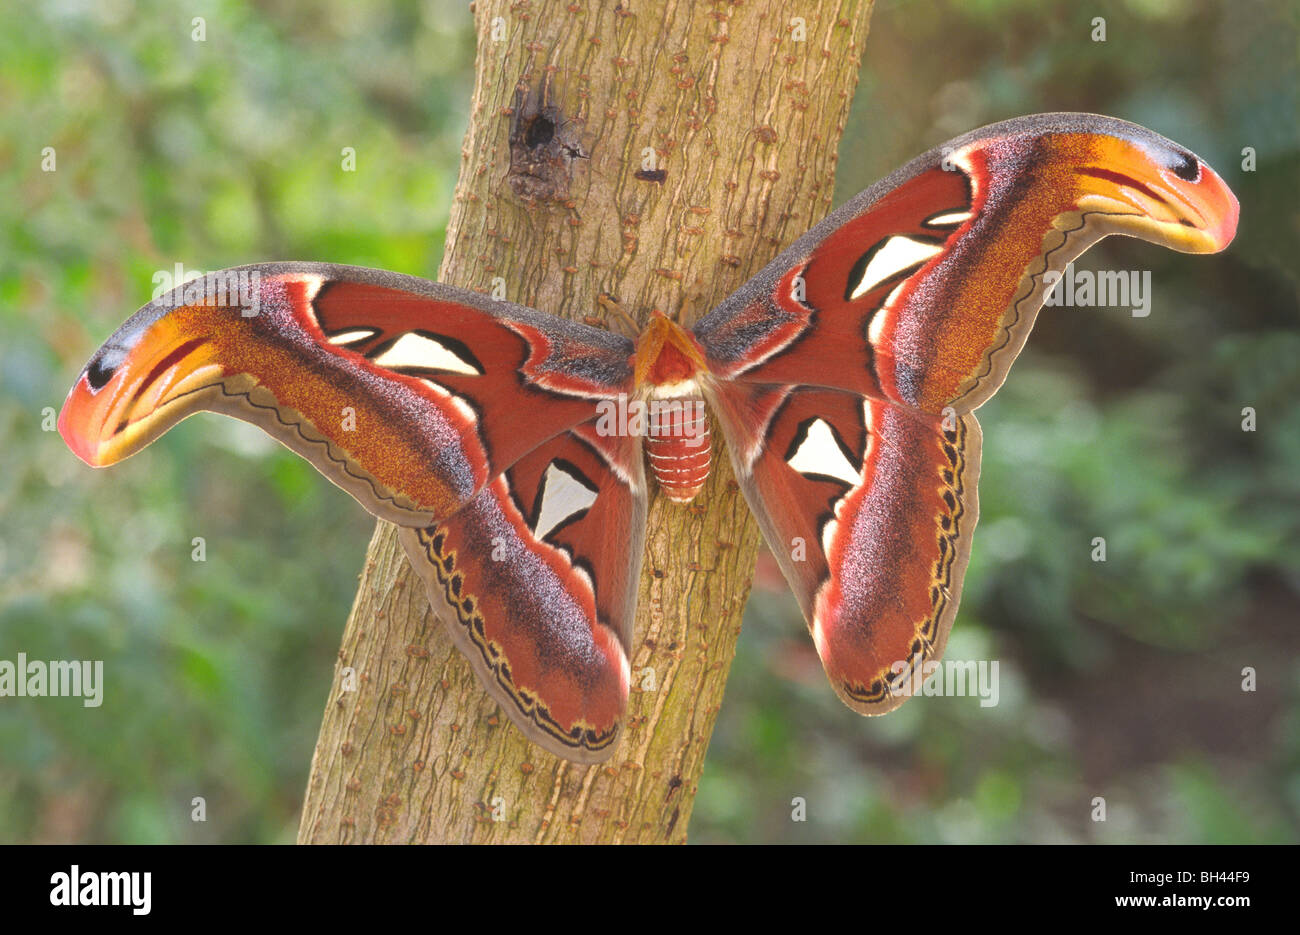 Atlas moth (Attacus atlas) female at rest with open wings on bush. - Stock Image